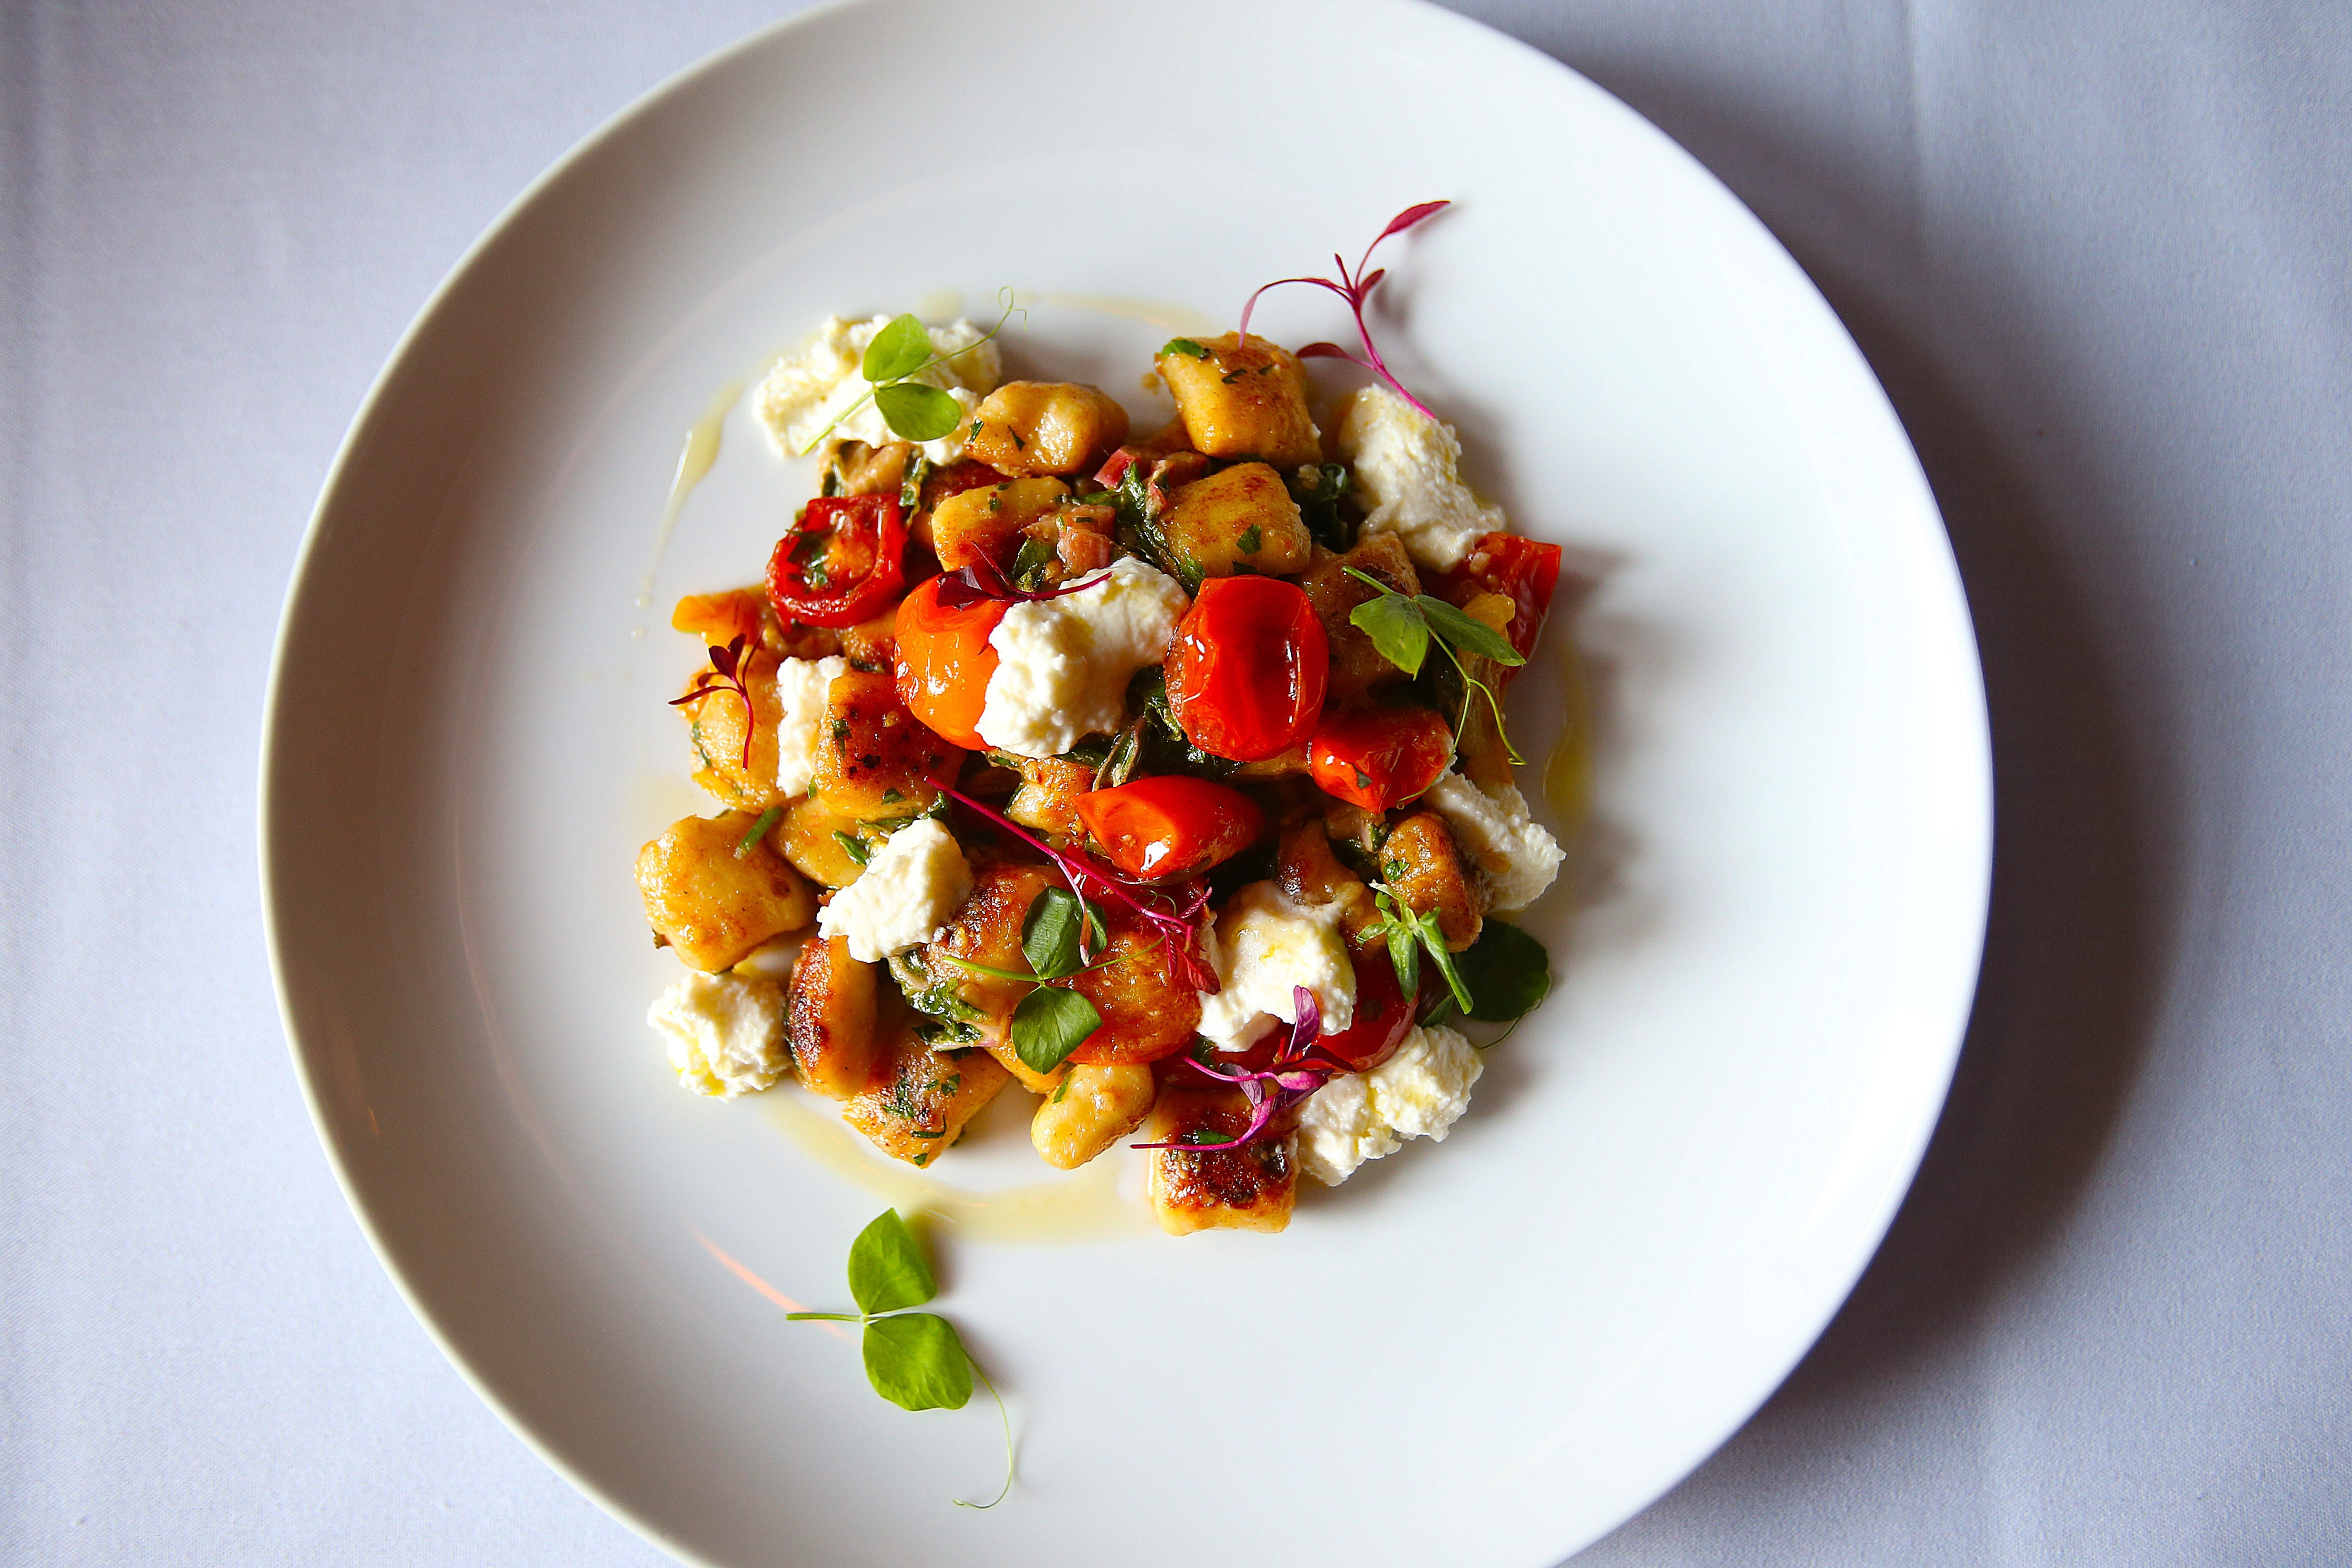 Chef Bruce Wieszala's handmade potato gnocchi, with local vegetables, homemade ricotta and fresh herbs, in the kitchen at Tabree in Snyder on Oct. 2.